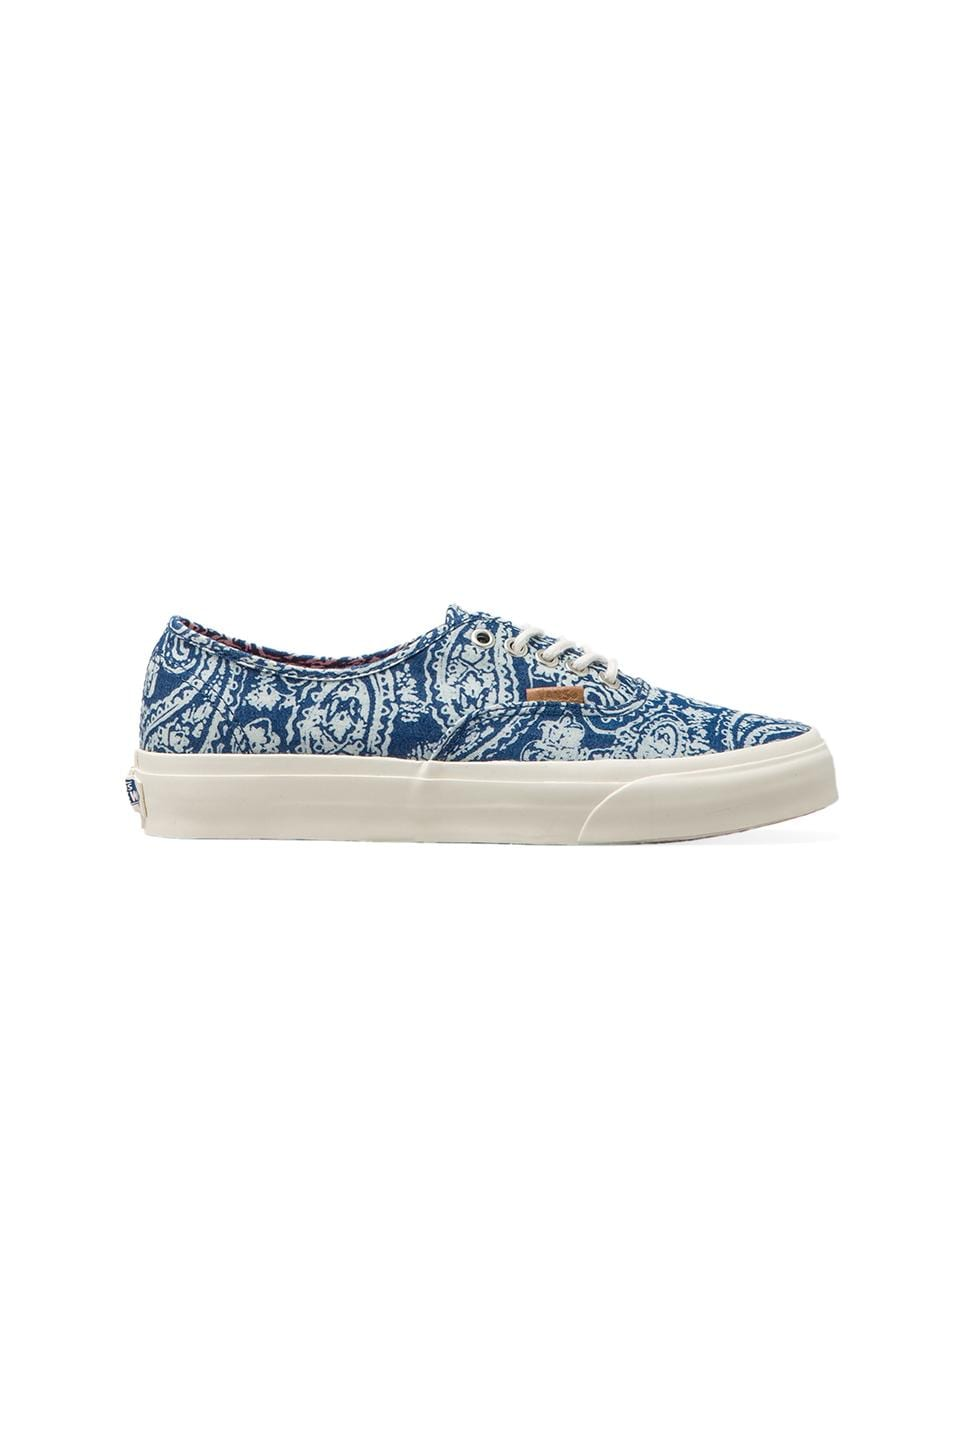 Vans California Authentic Paisley in Limoges